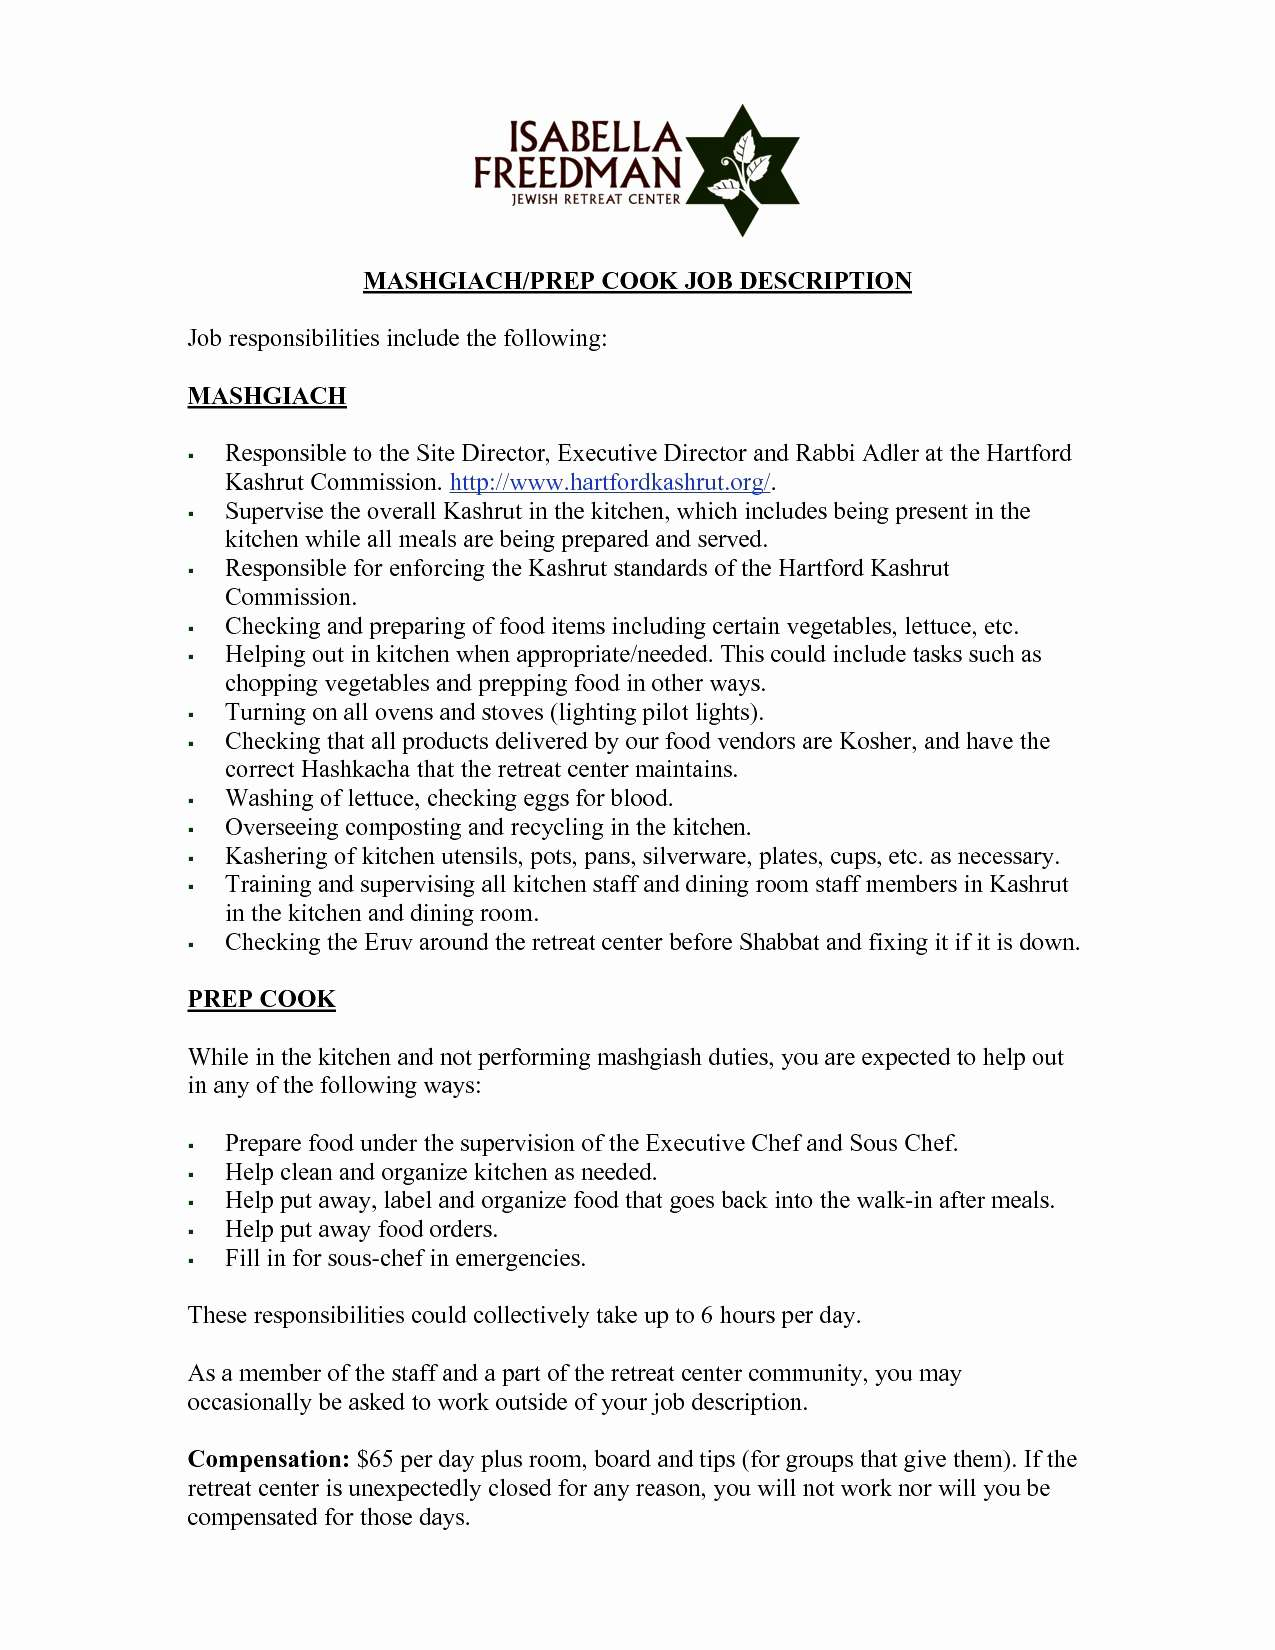 Nursing Resume Cover Letter Template Free - Nurse Practitioner Resume Template New Resume and Cover Letter